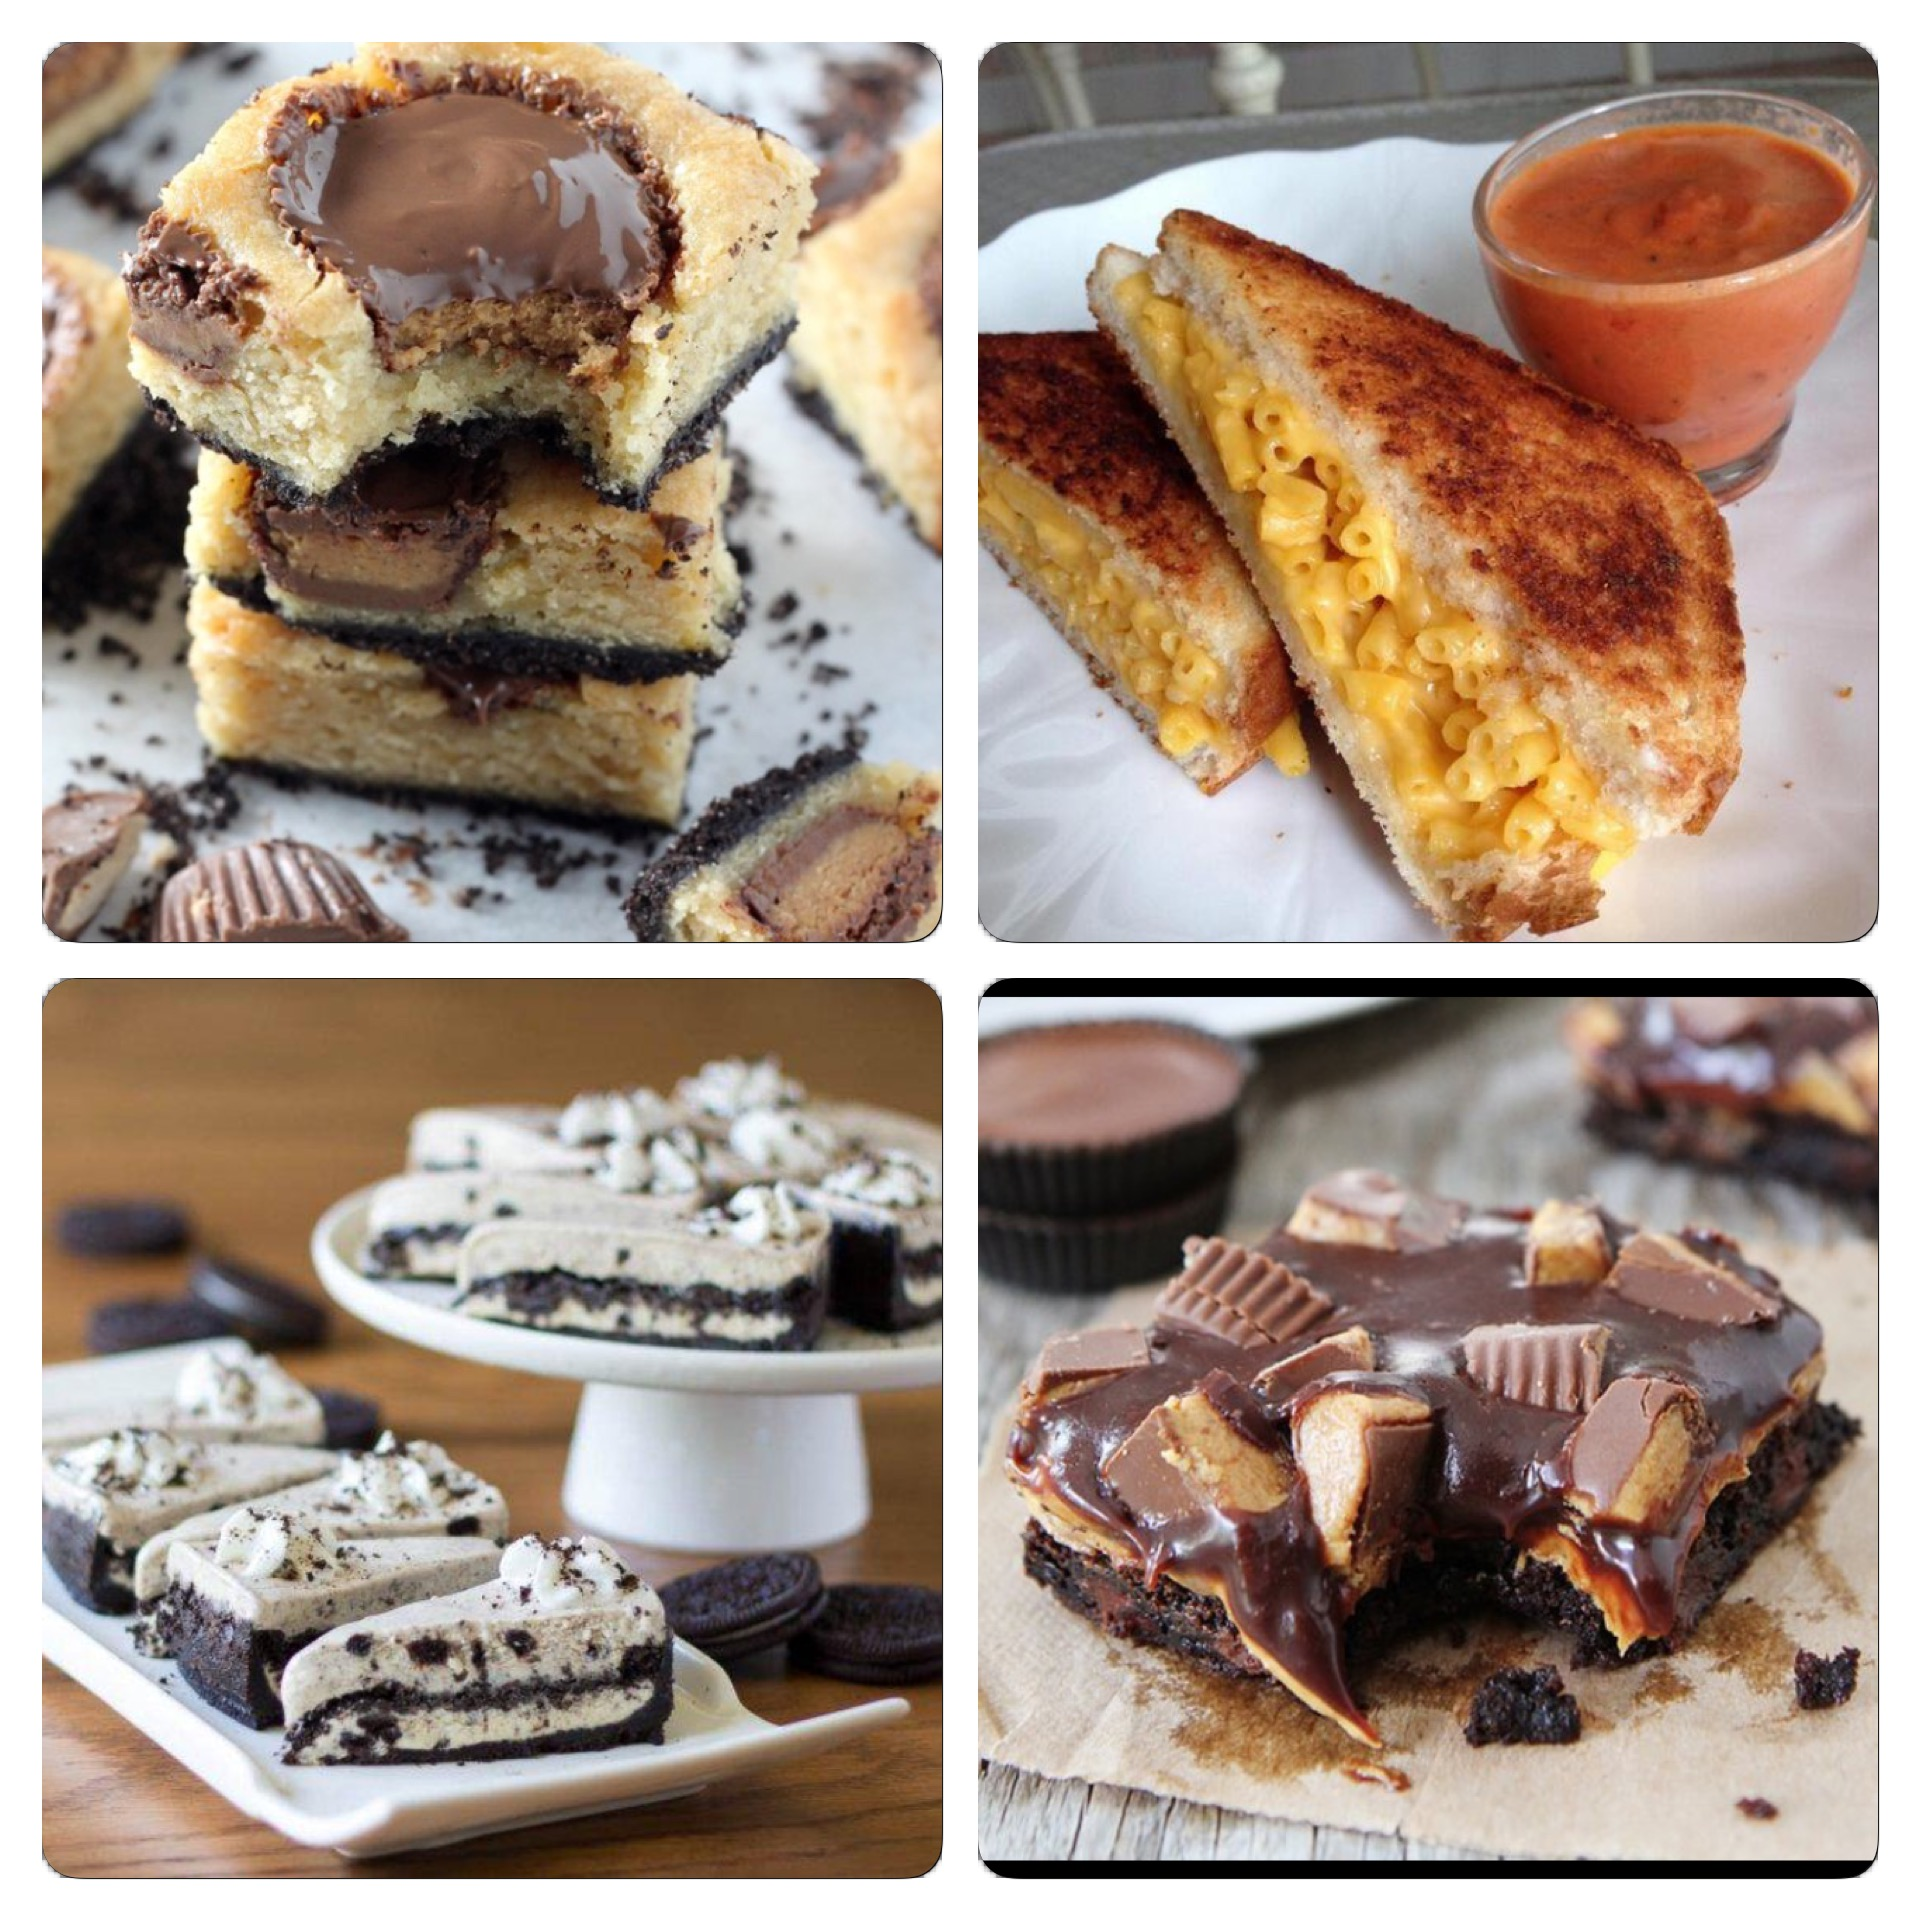 Some of the dishes from @ItsFoodPorn that I have retweeted in the past week....grilled mac and cheese sandwiches, chocolate and peanut butter brownies, Oreo ice cream cake, and black bottom banana peanut butter cup blondies.